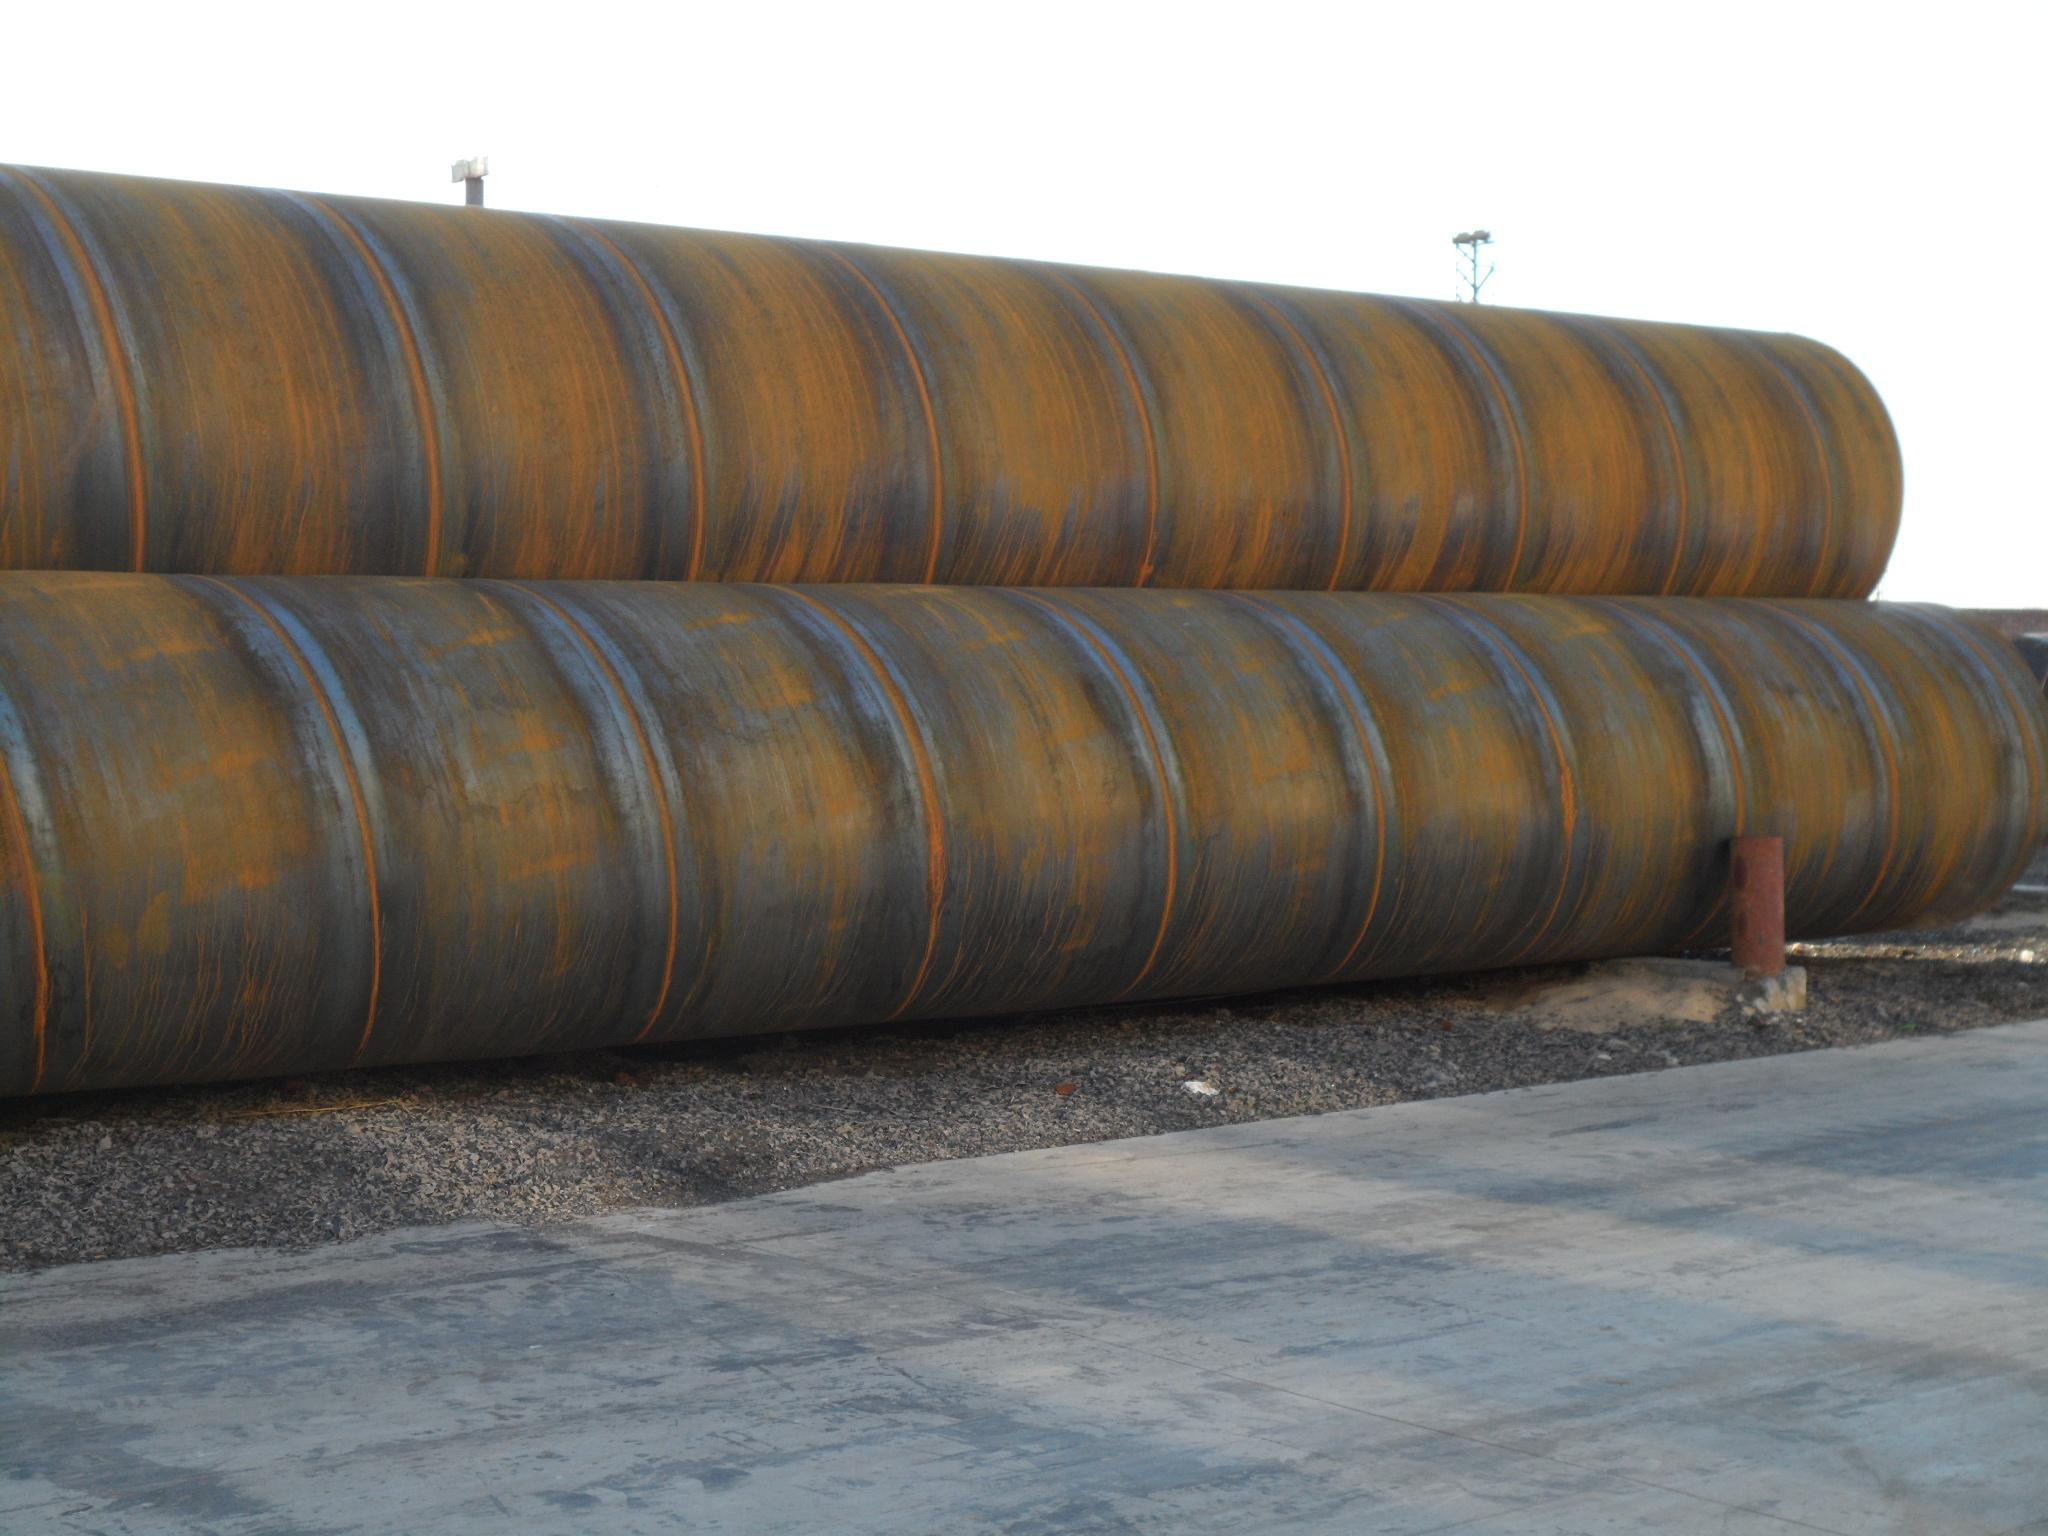 1200mm diameter welded steel pipe